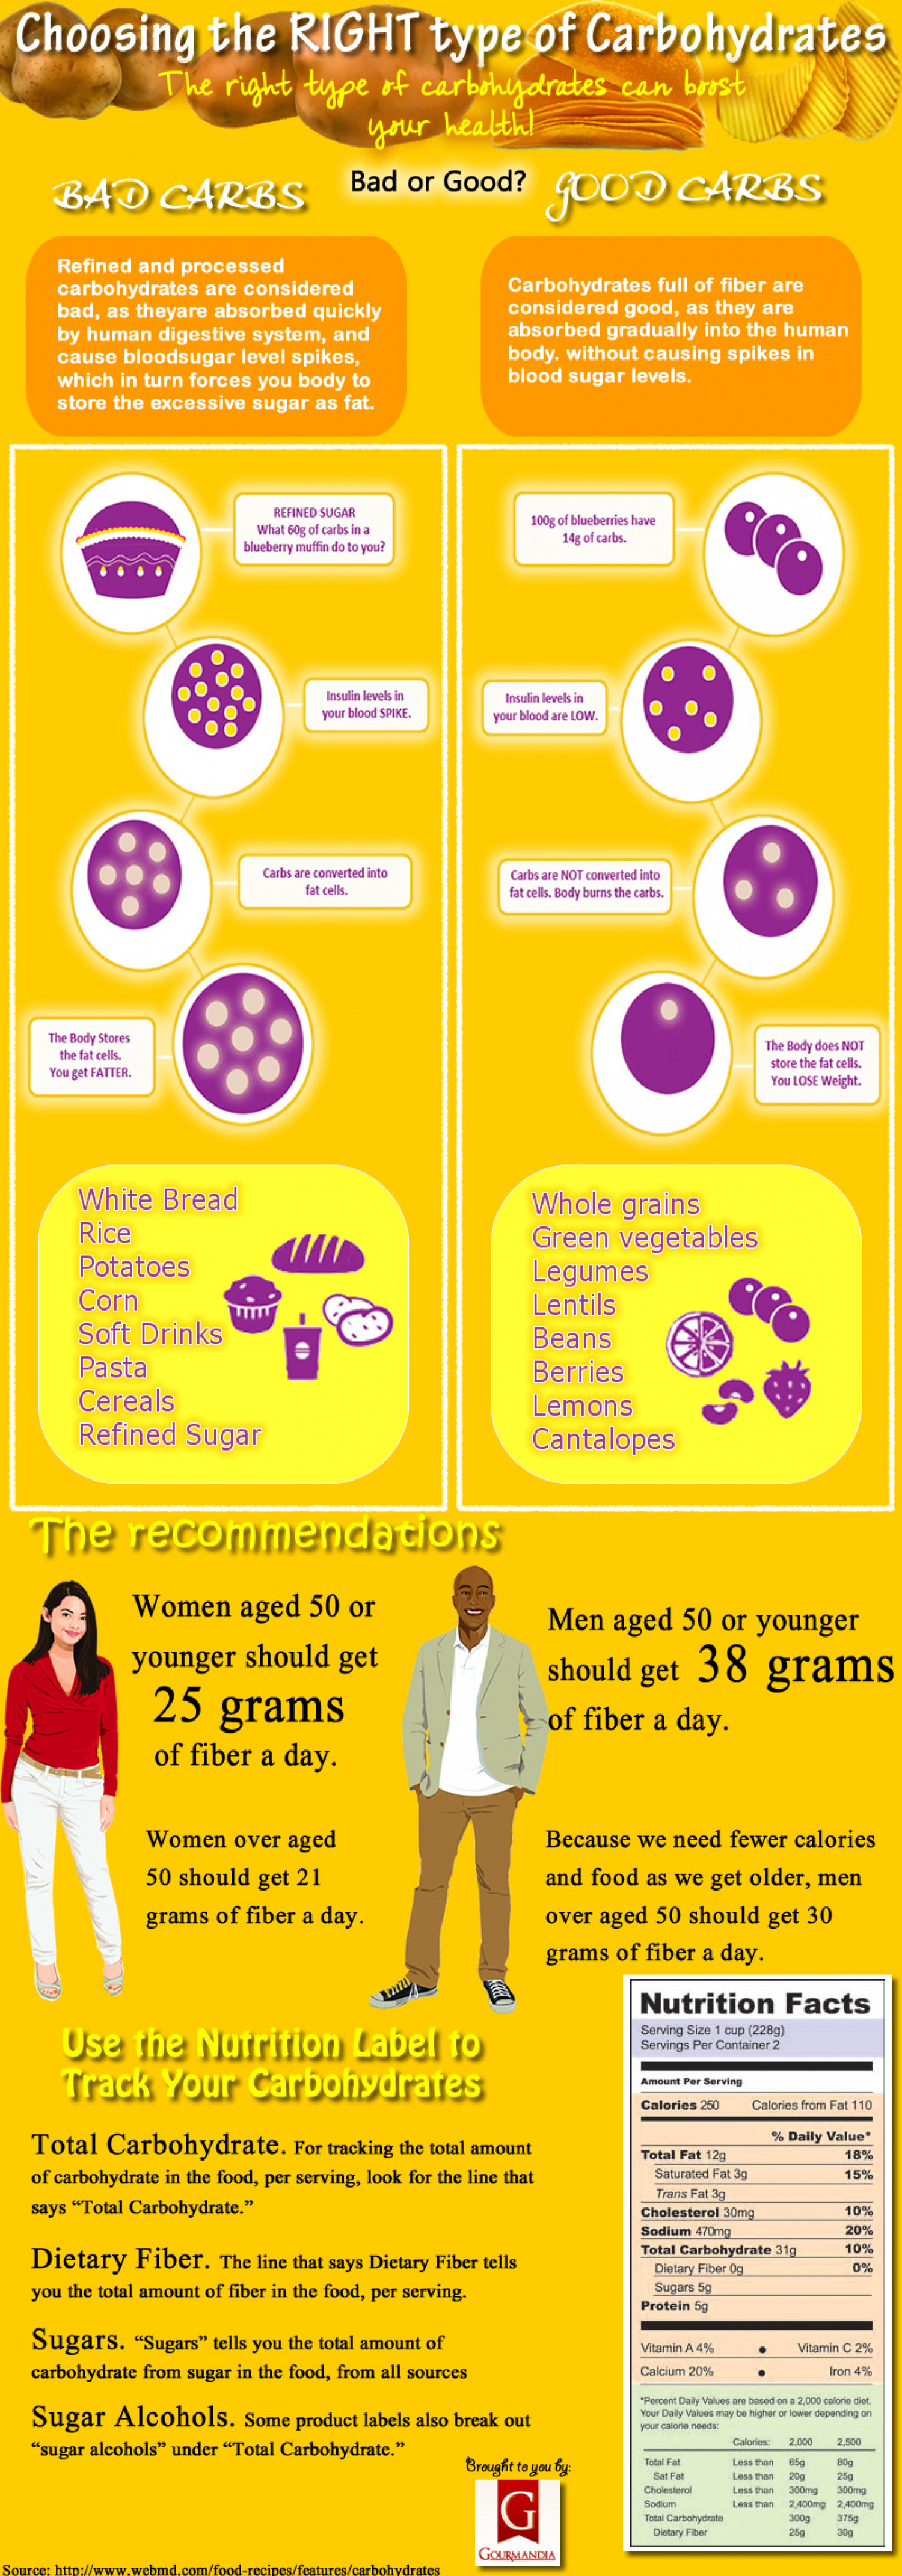 Choosing the RIGHT type of Carbohydrates Infographic